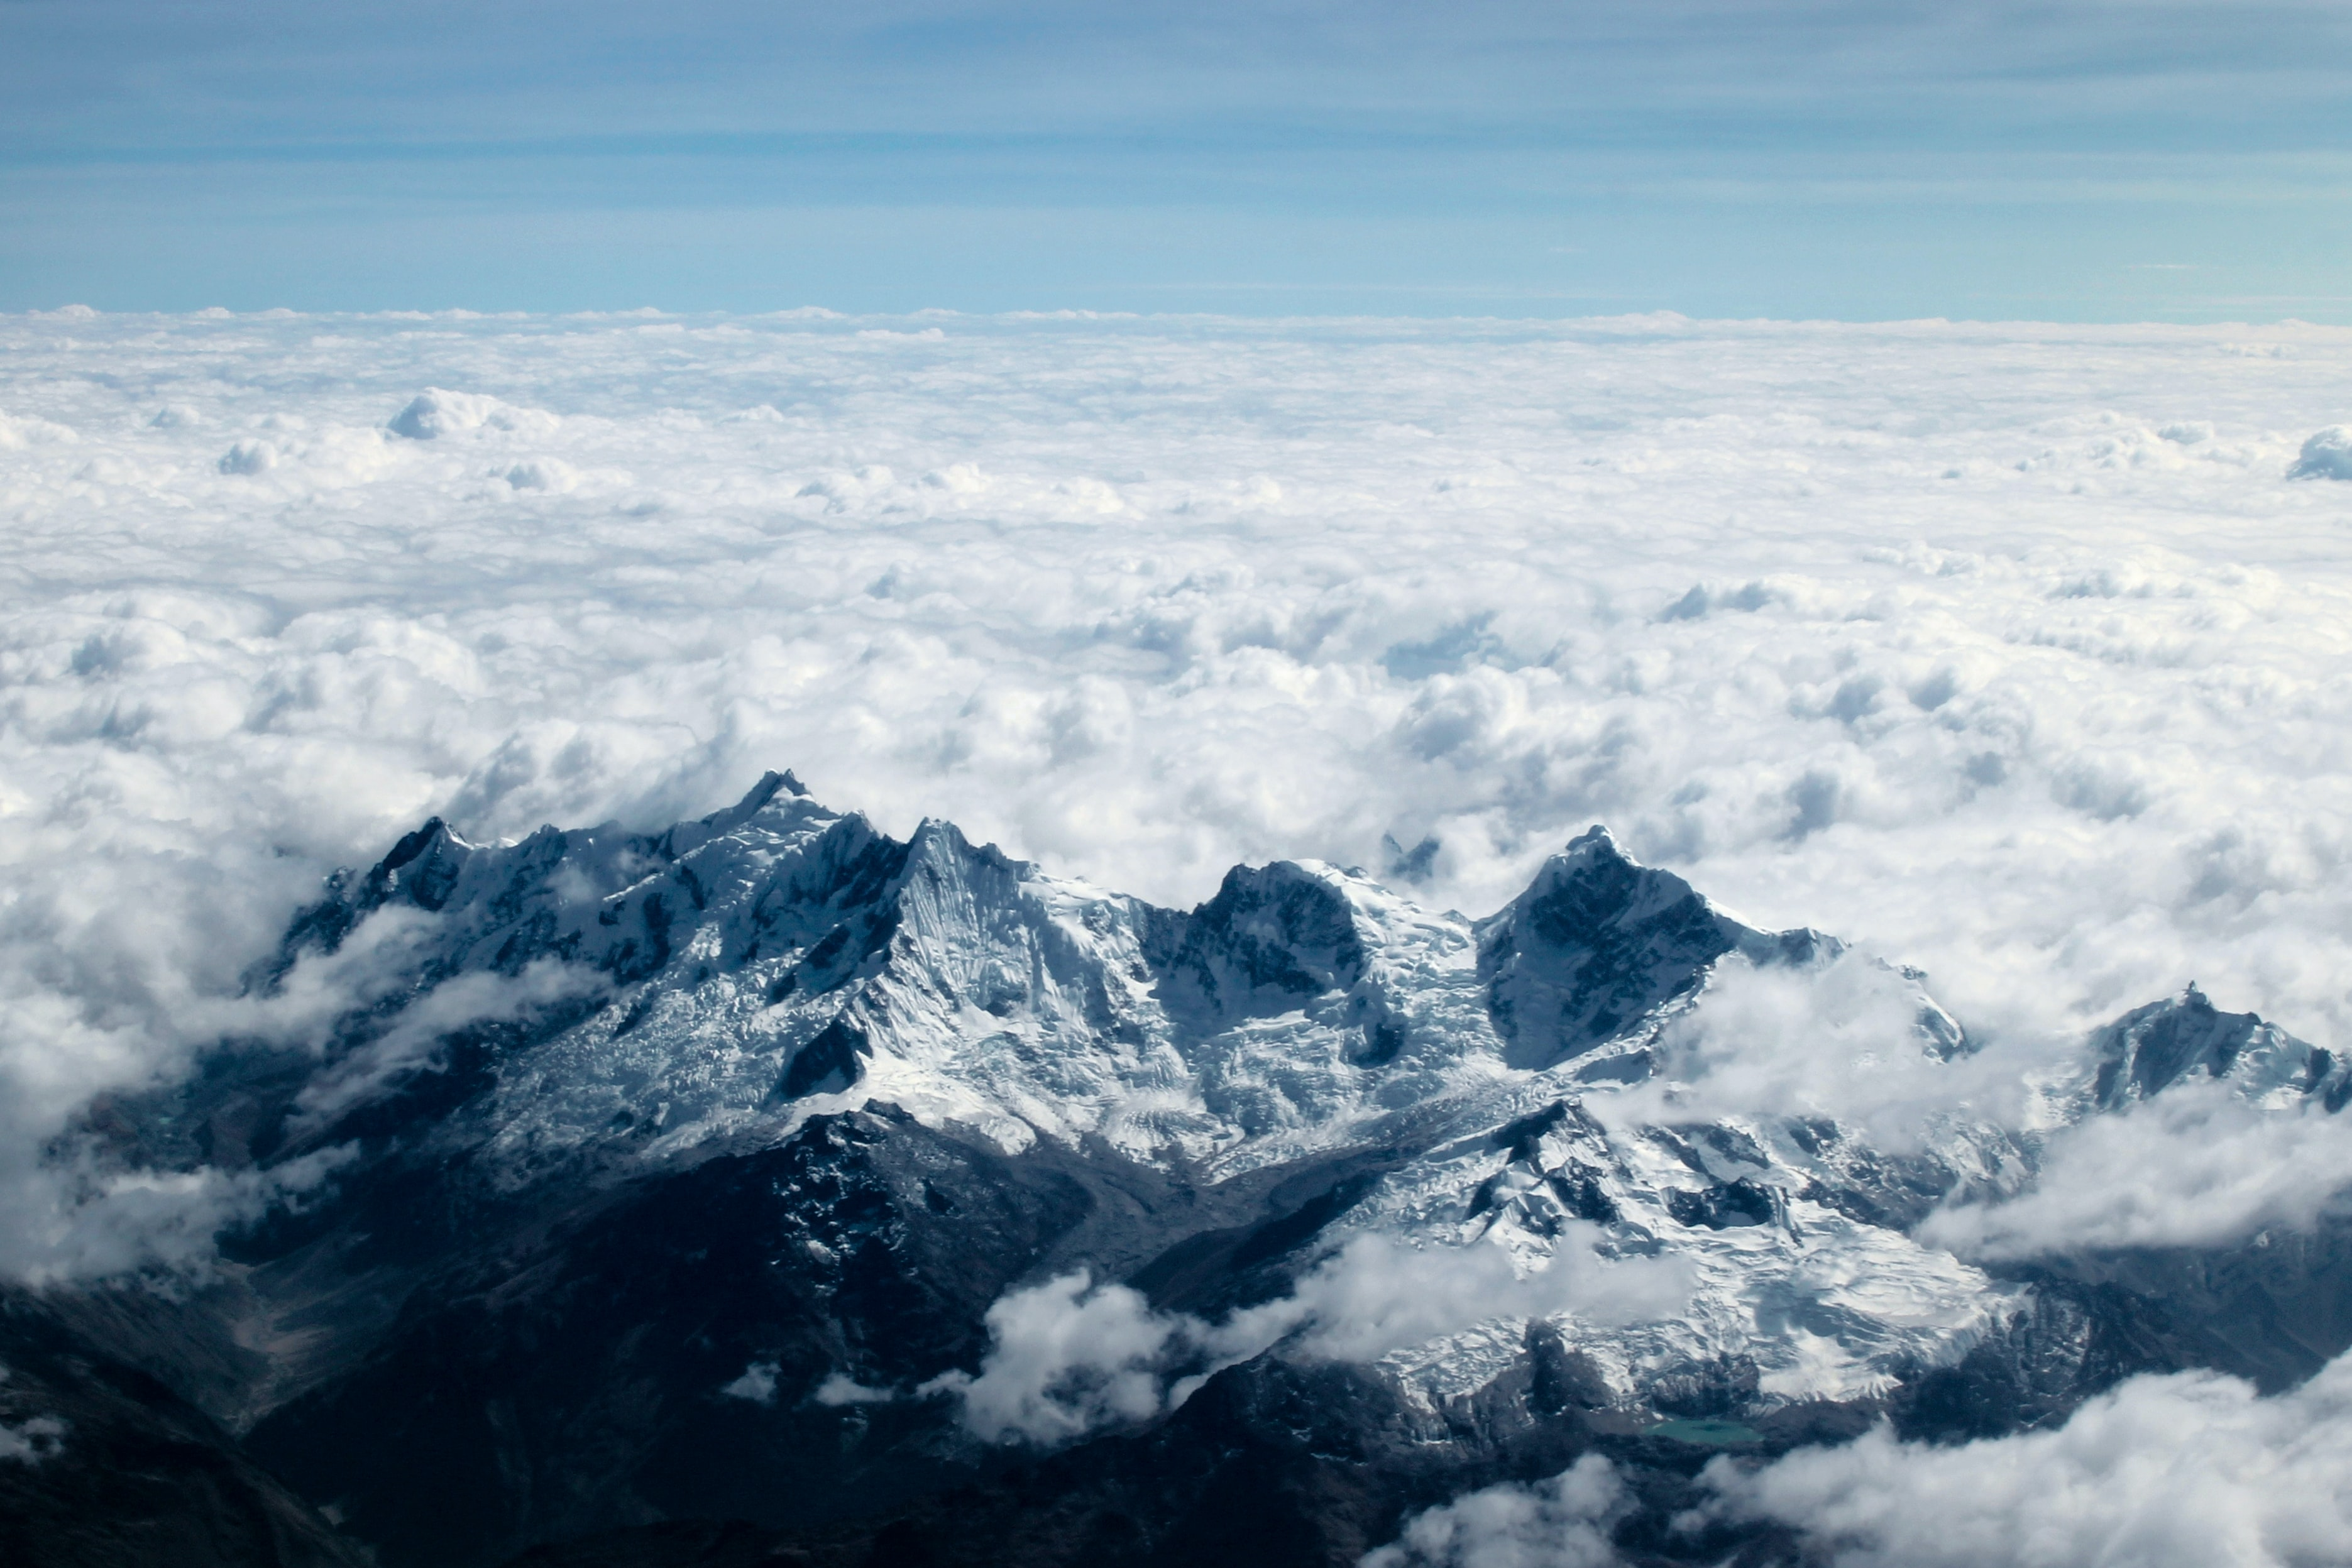 A snowy mountain ridge with thick clouds stretching over the land to the horizon